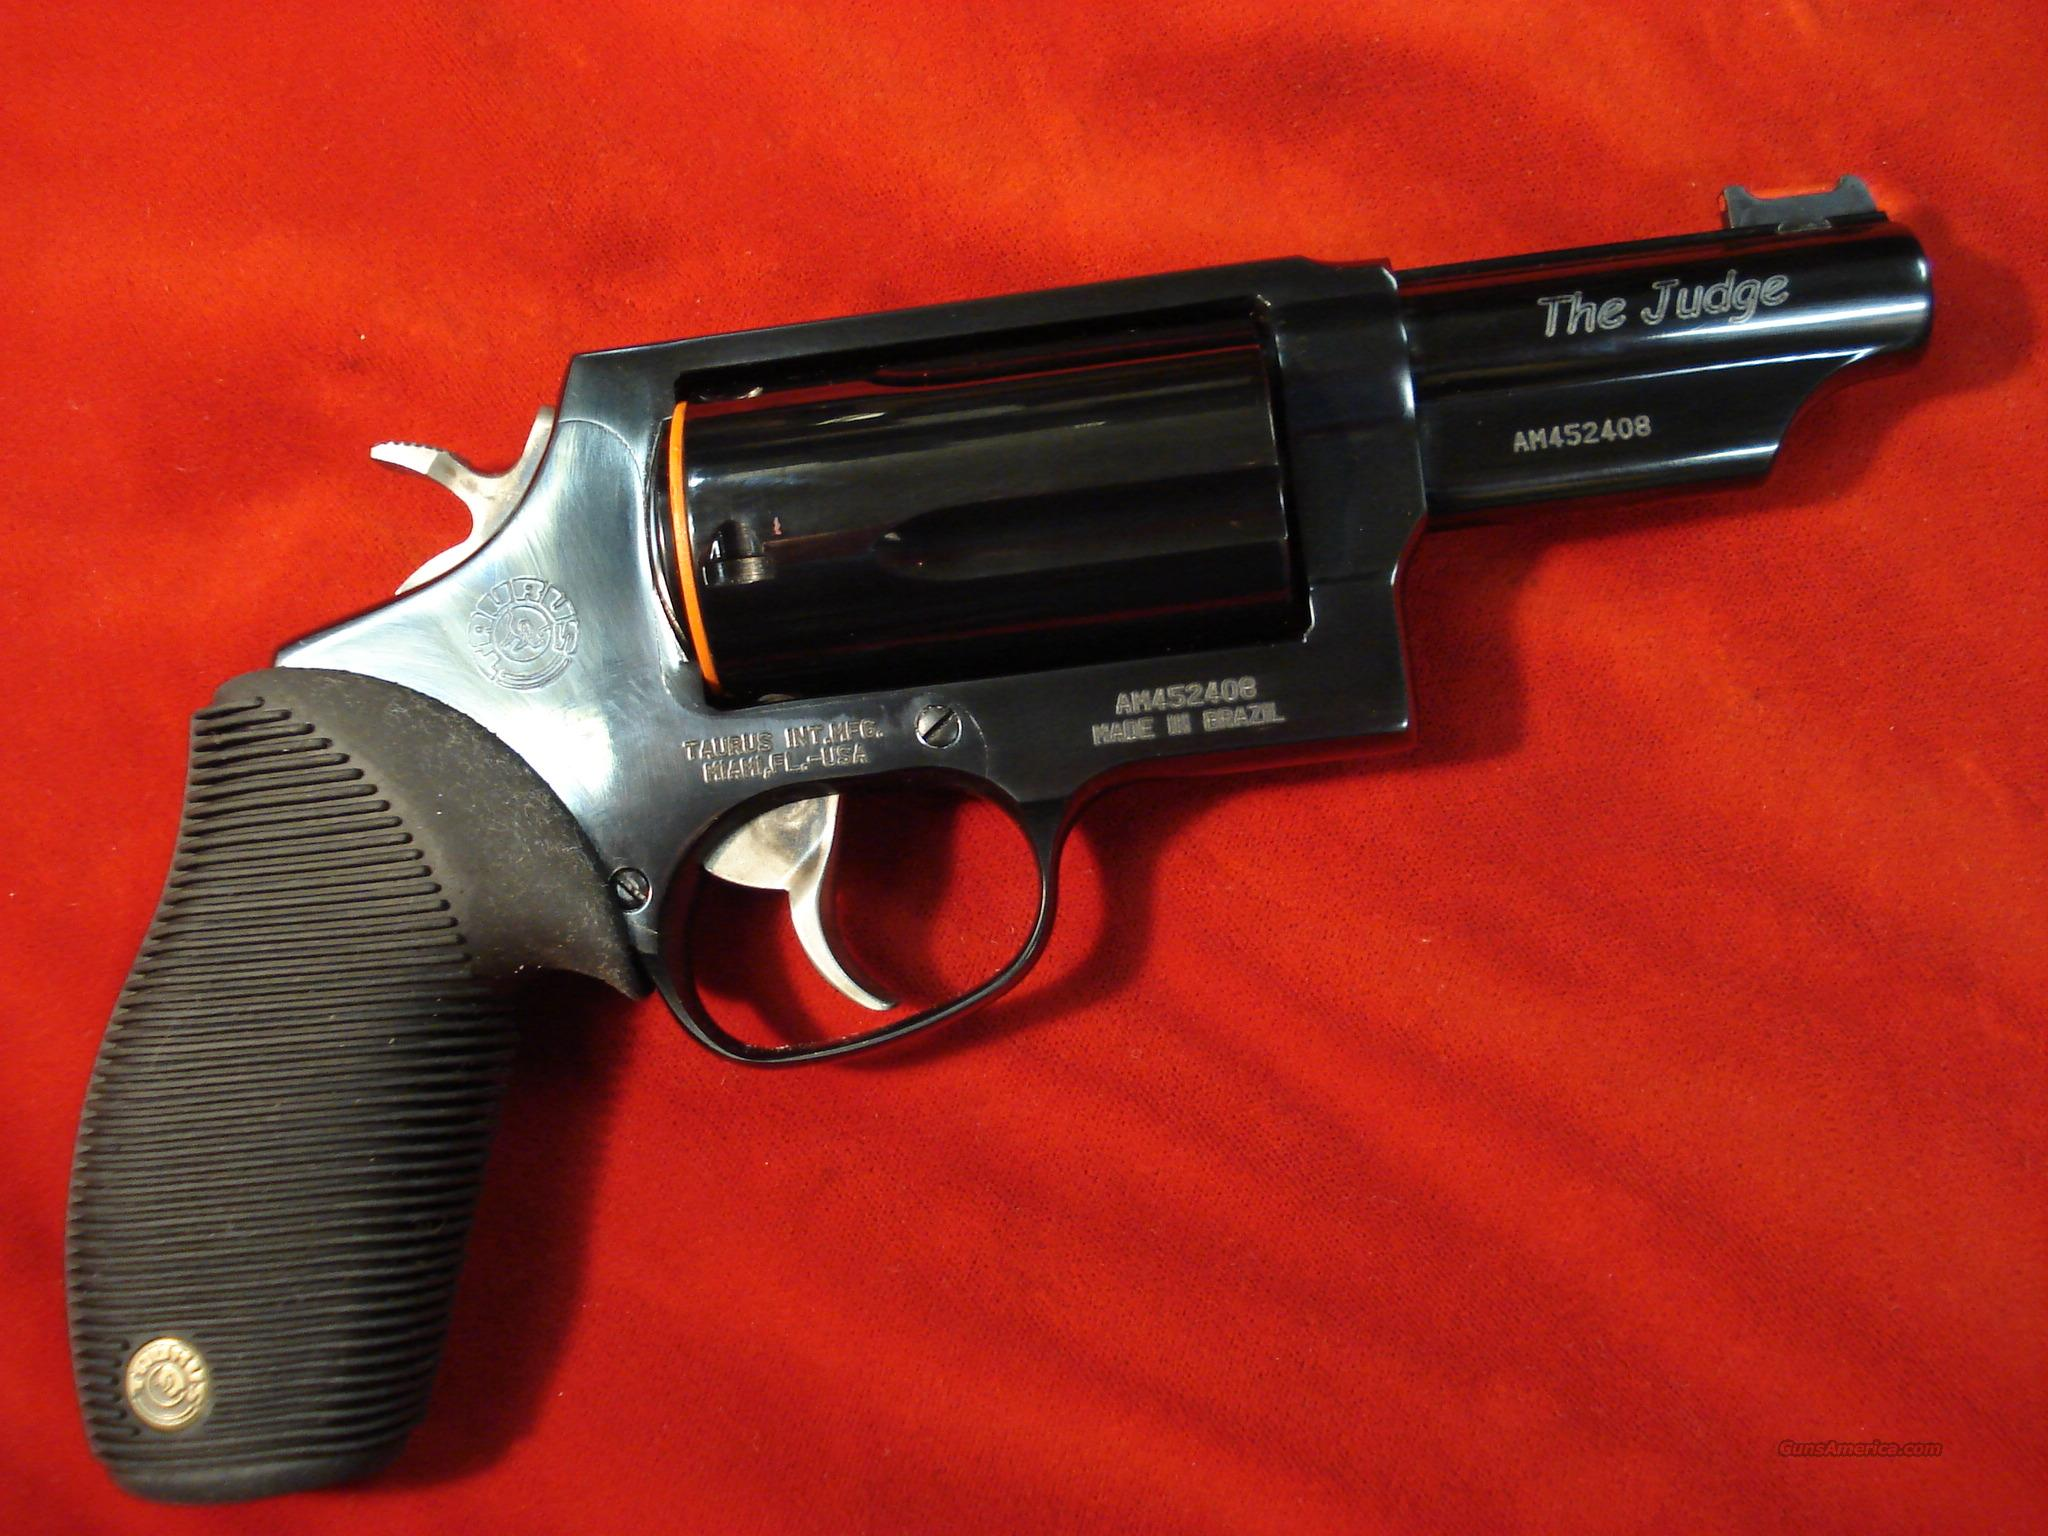 "TAURUS 4510 TRACKER 410G REVOLVER "" THE JUDGE "" POLISHED 3"" BLUE NEW    Guns > Pistols > Taurus Pistols/Revolvers > Revolvers"